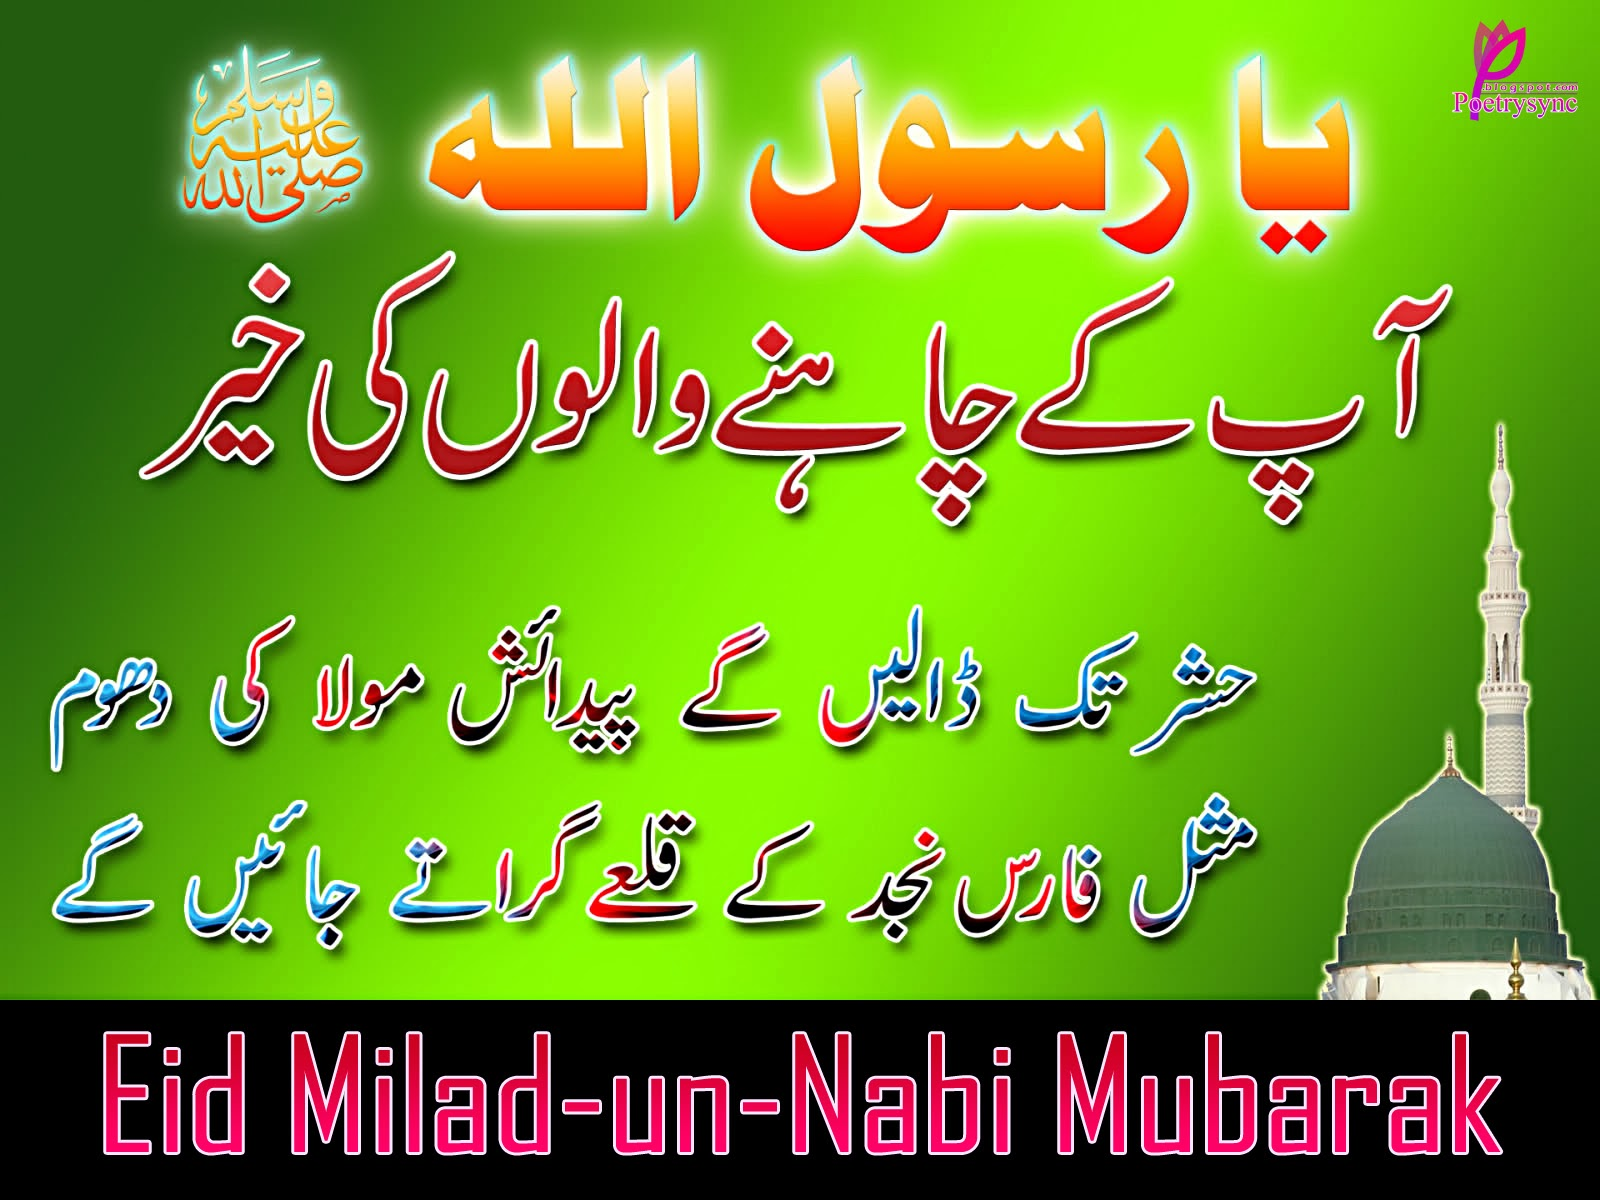 Eid ul milad un nabi 2016 sms quotes messages wishes eid ul milad un nabi 2016 sms quotes messages wishes status wallpapers greetings m4hsunfo